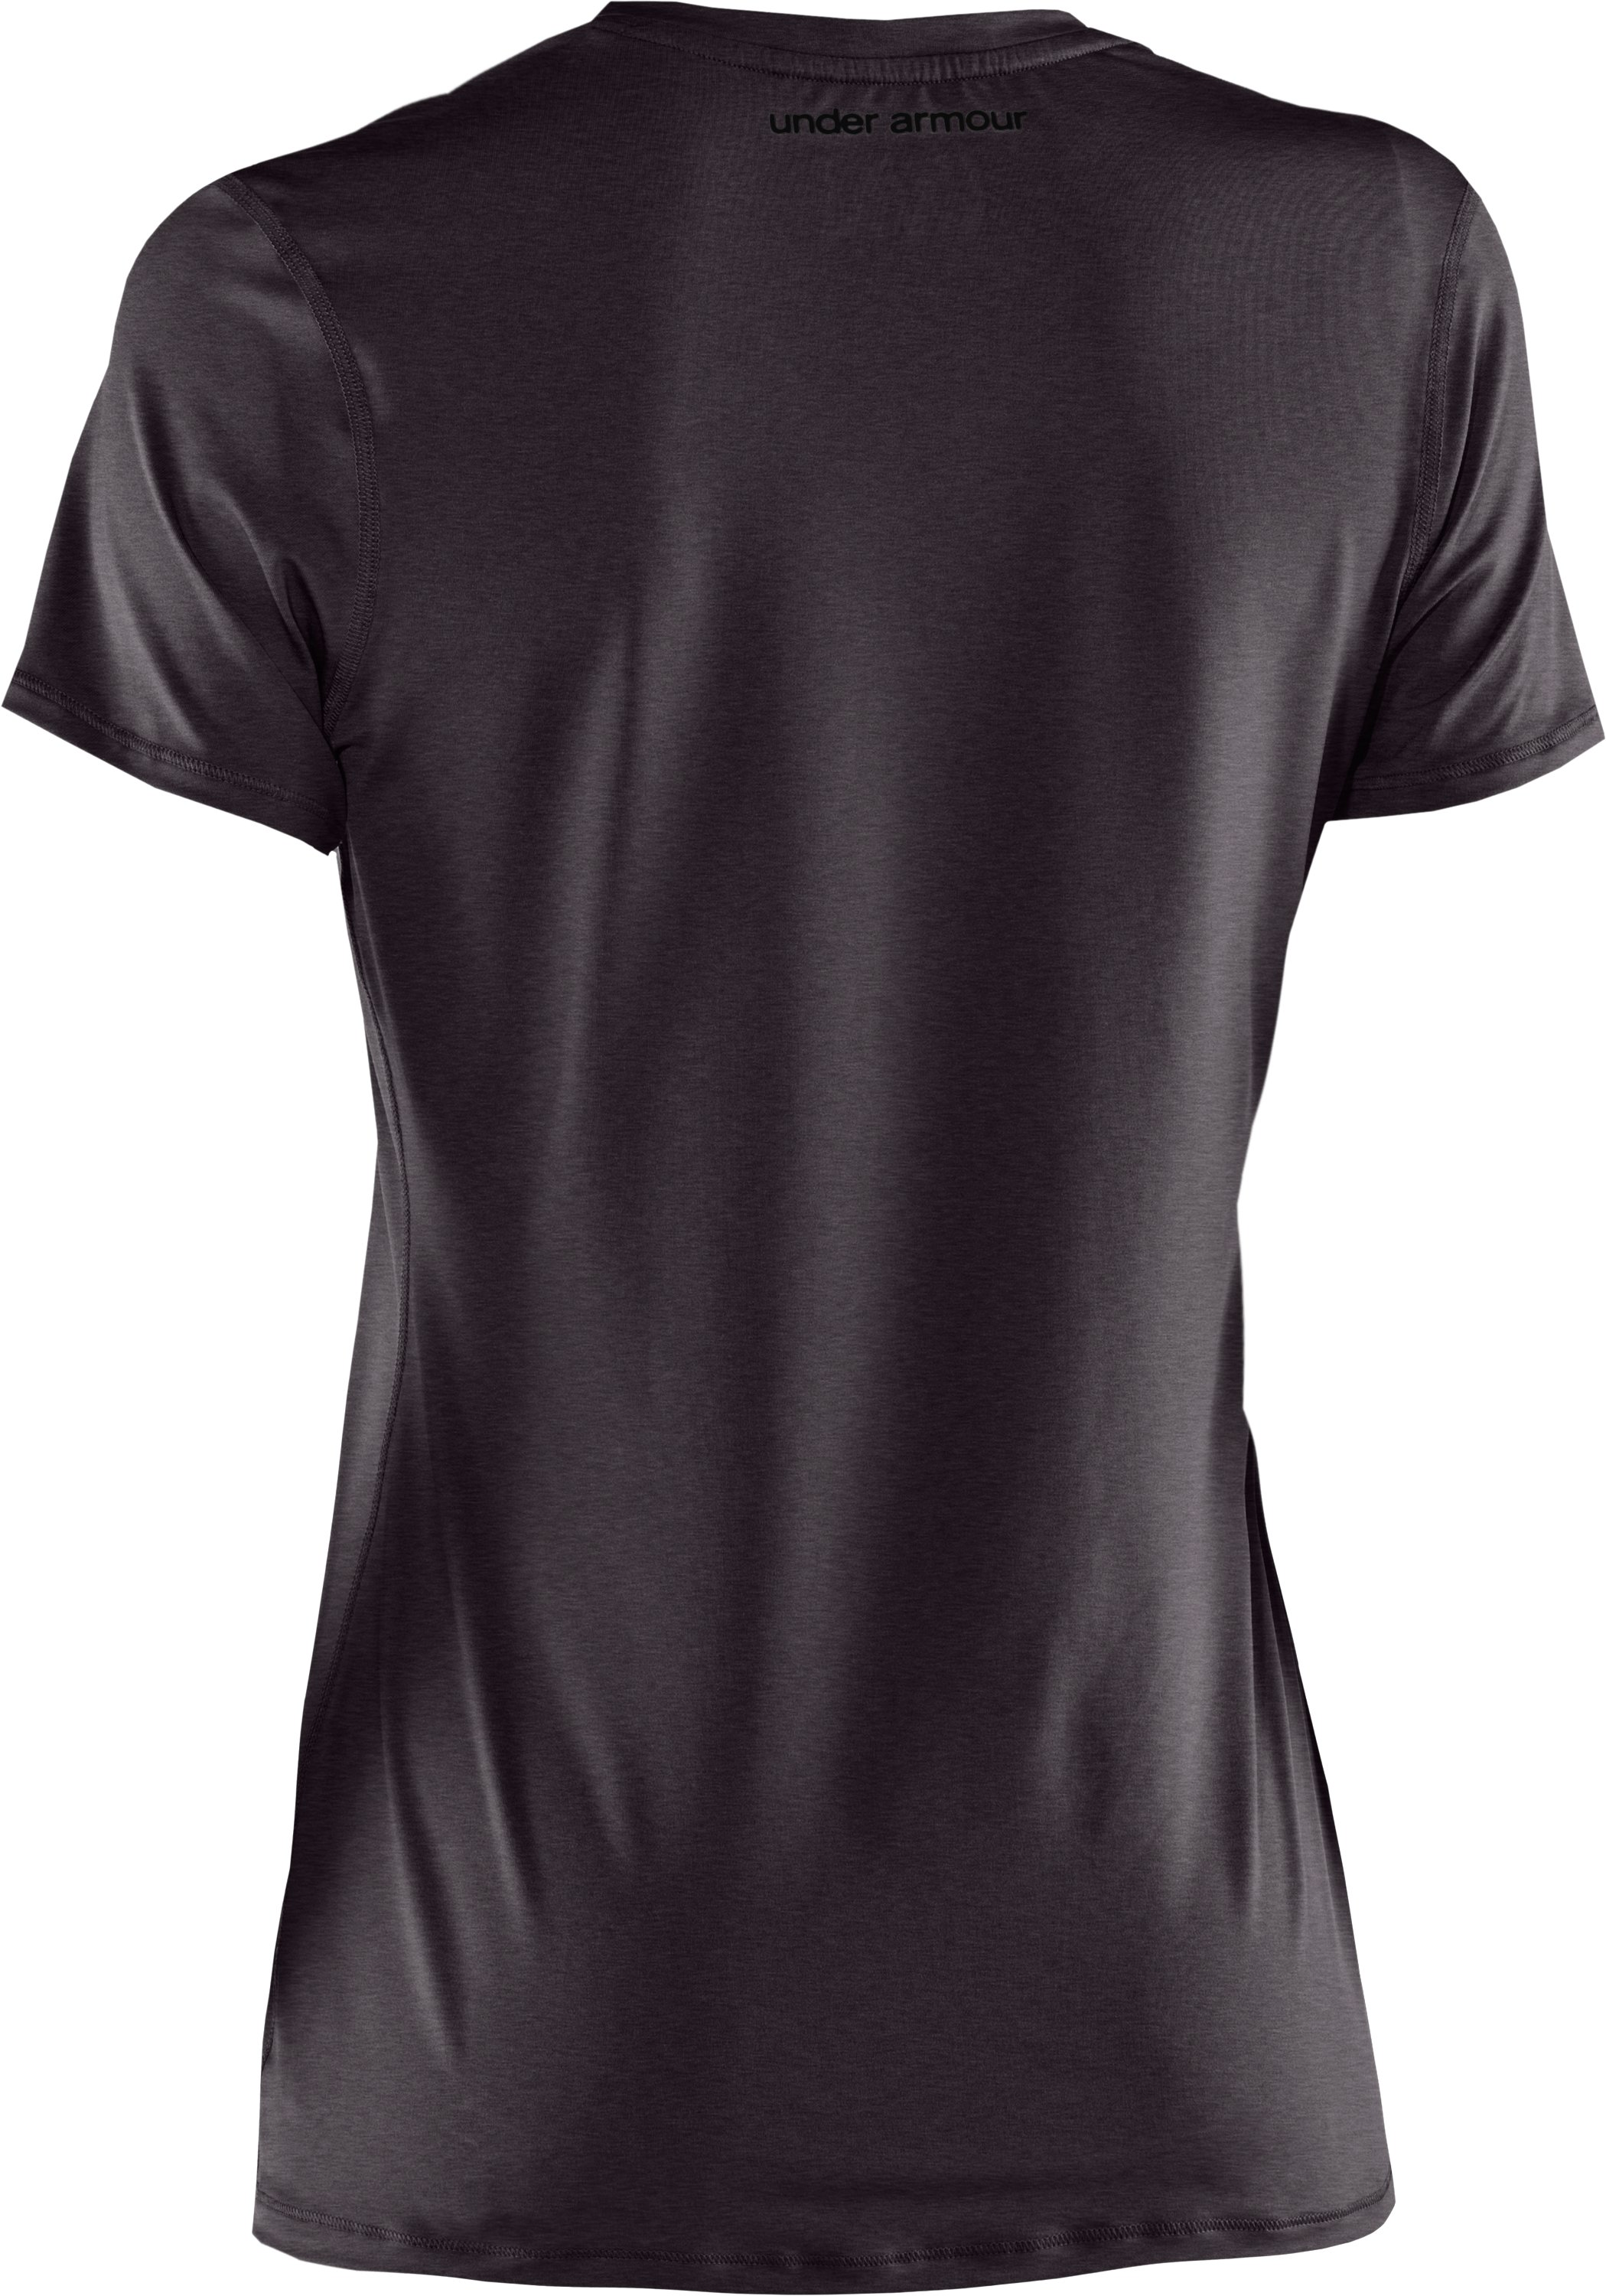 Women's HeatGear® Sonic Short Sleeve, Carbon Heather,